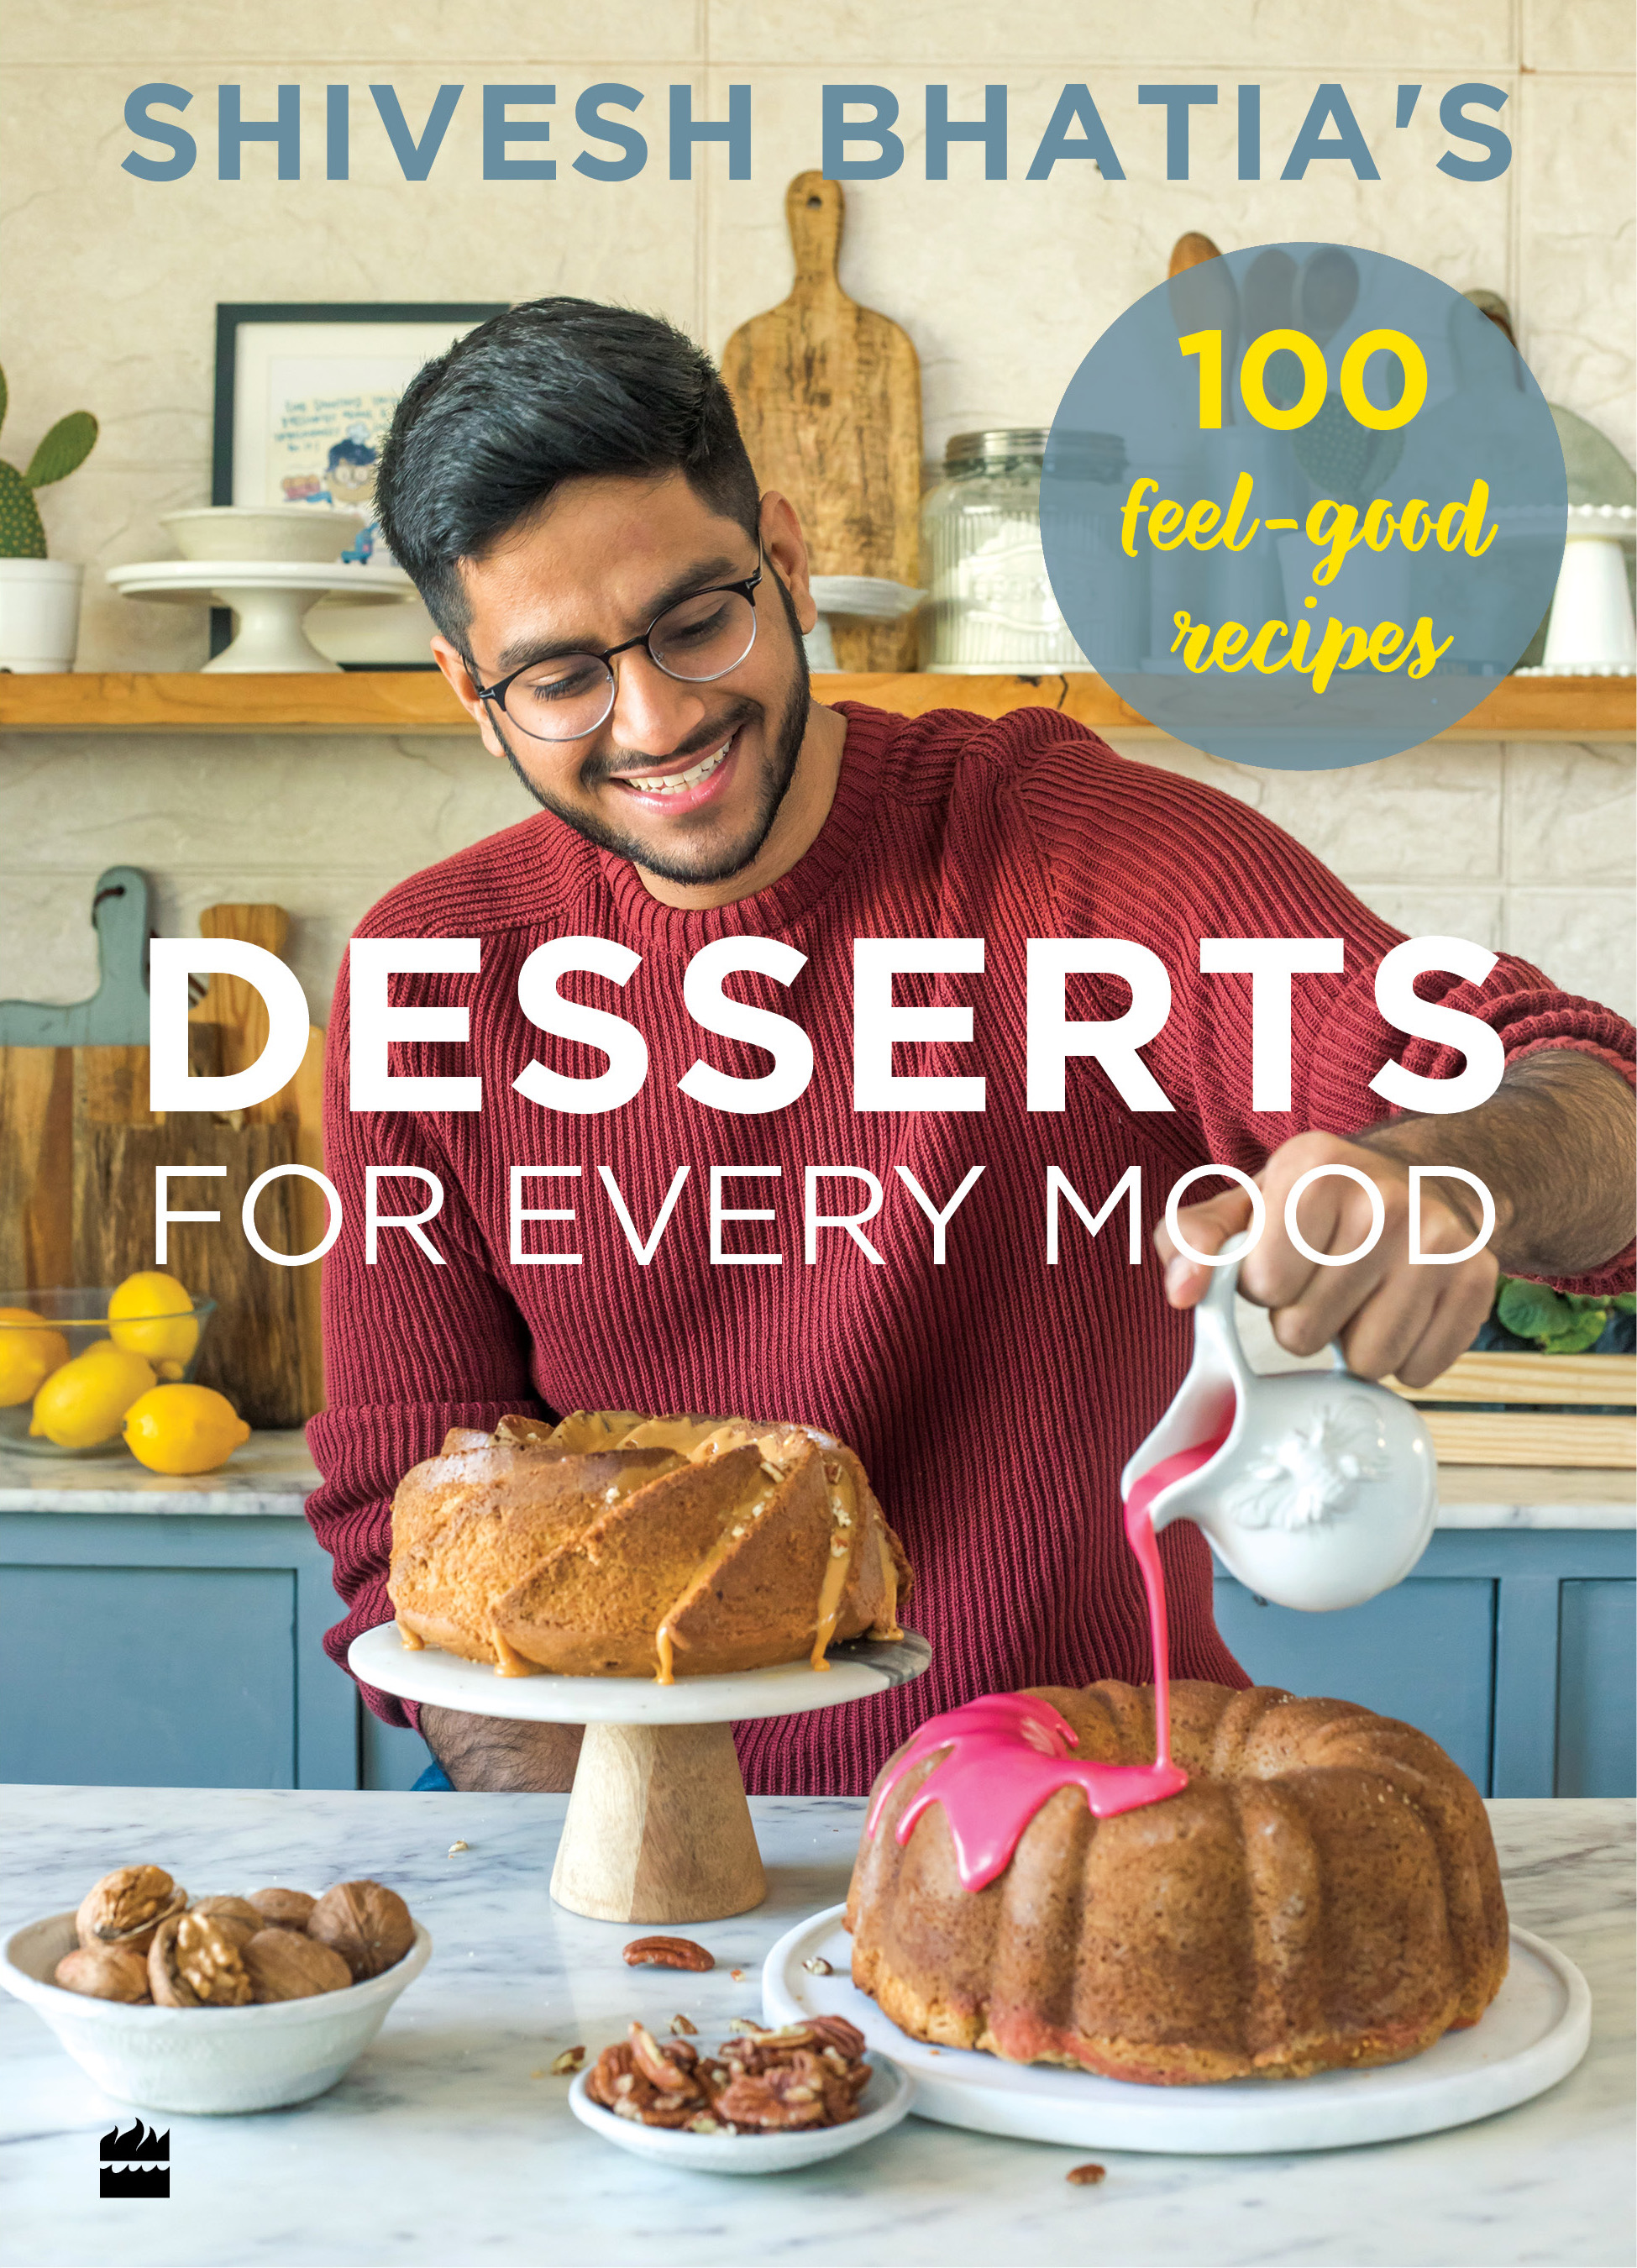 Desserts for Every Mood by Shivesh Bhatia